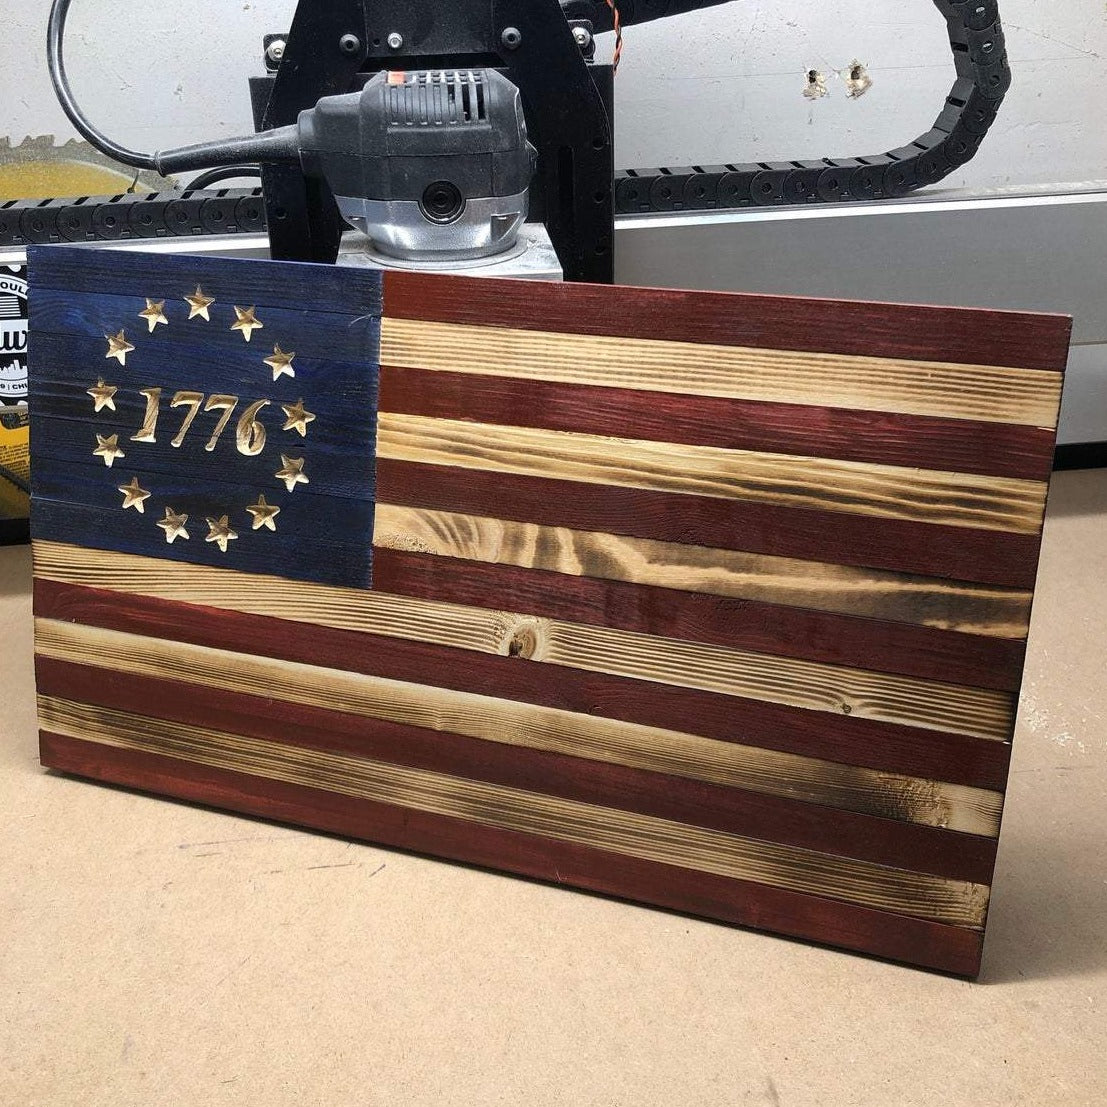 1776 Betsy Ross Wooden Flag - Broad Shoulders Woodworks 2020